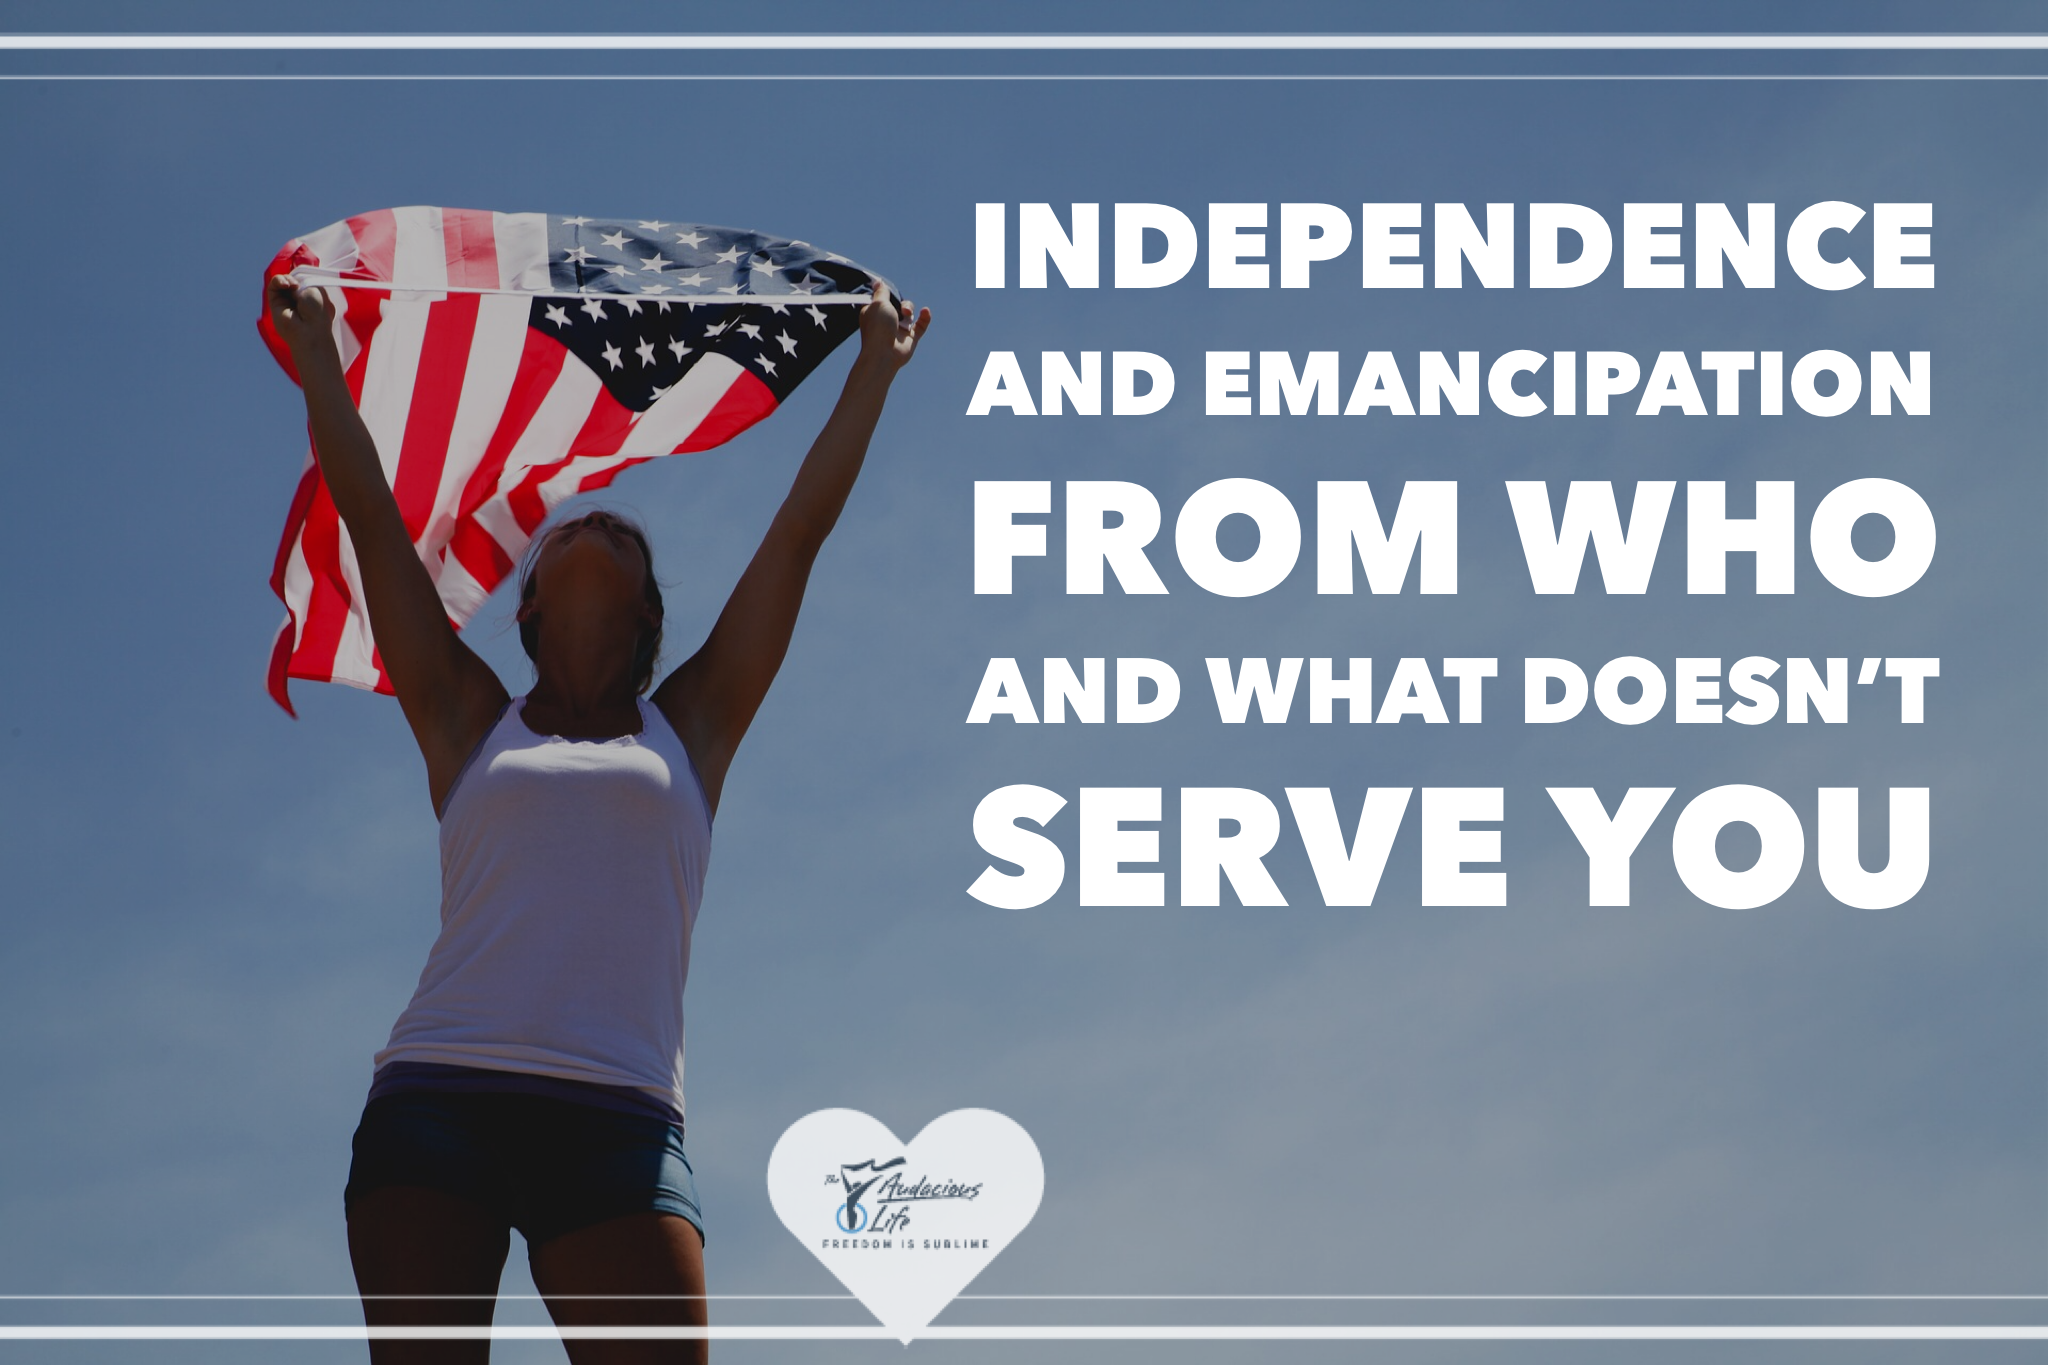 Indepedence and Liberation from Who and What Doesn't Support You